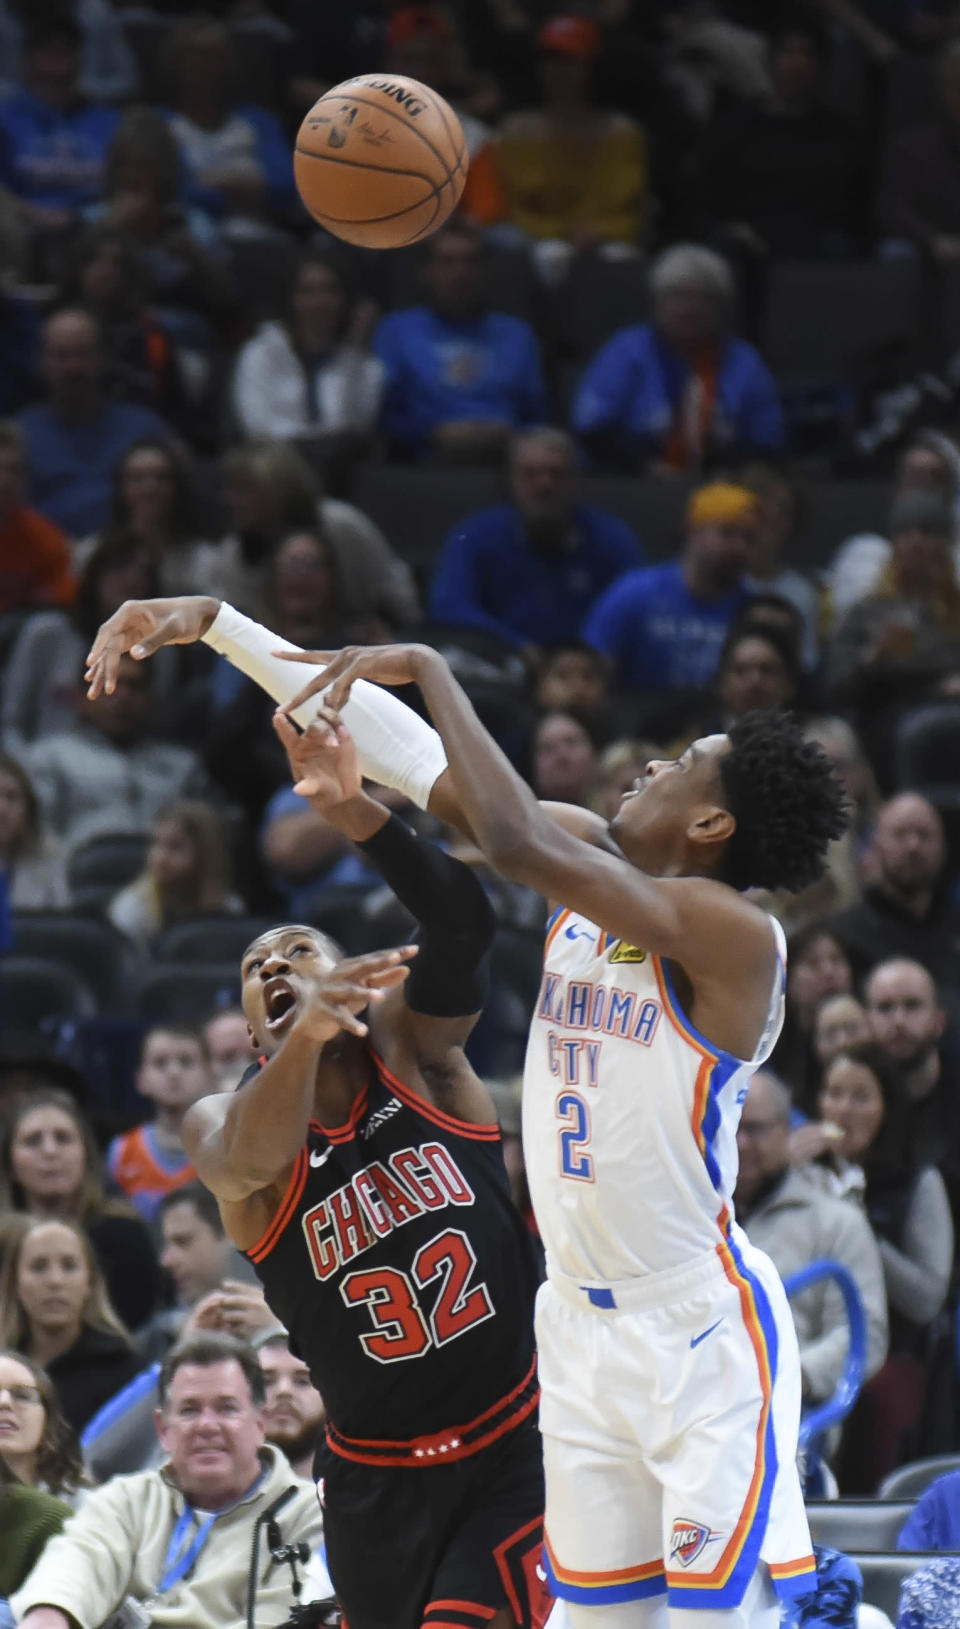 Chicago Bulls guard Kris Dunn (32) tries to block a shot by Oklahoma City Thunder guard Shia Gilgeous- Alexander (2) in the first half of an NBA basketball game, Monday, Dec. 16, 2019, in Oklahoma City. (AP Photo/Kyle Phillips)